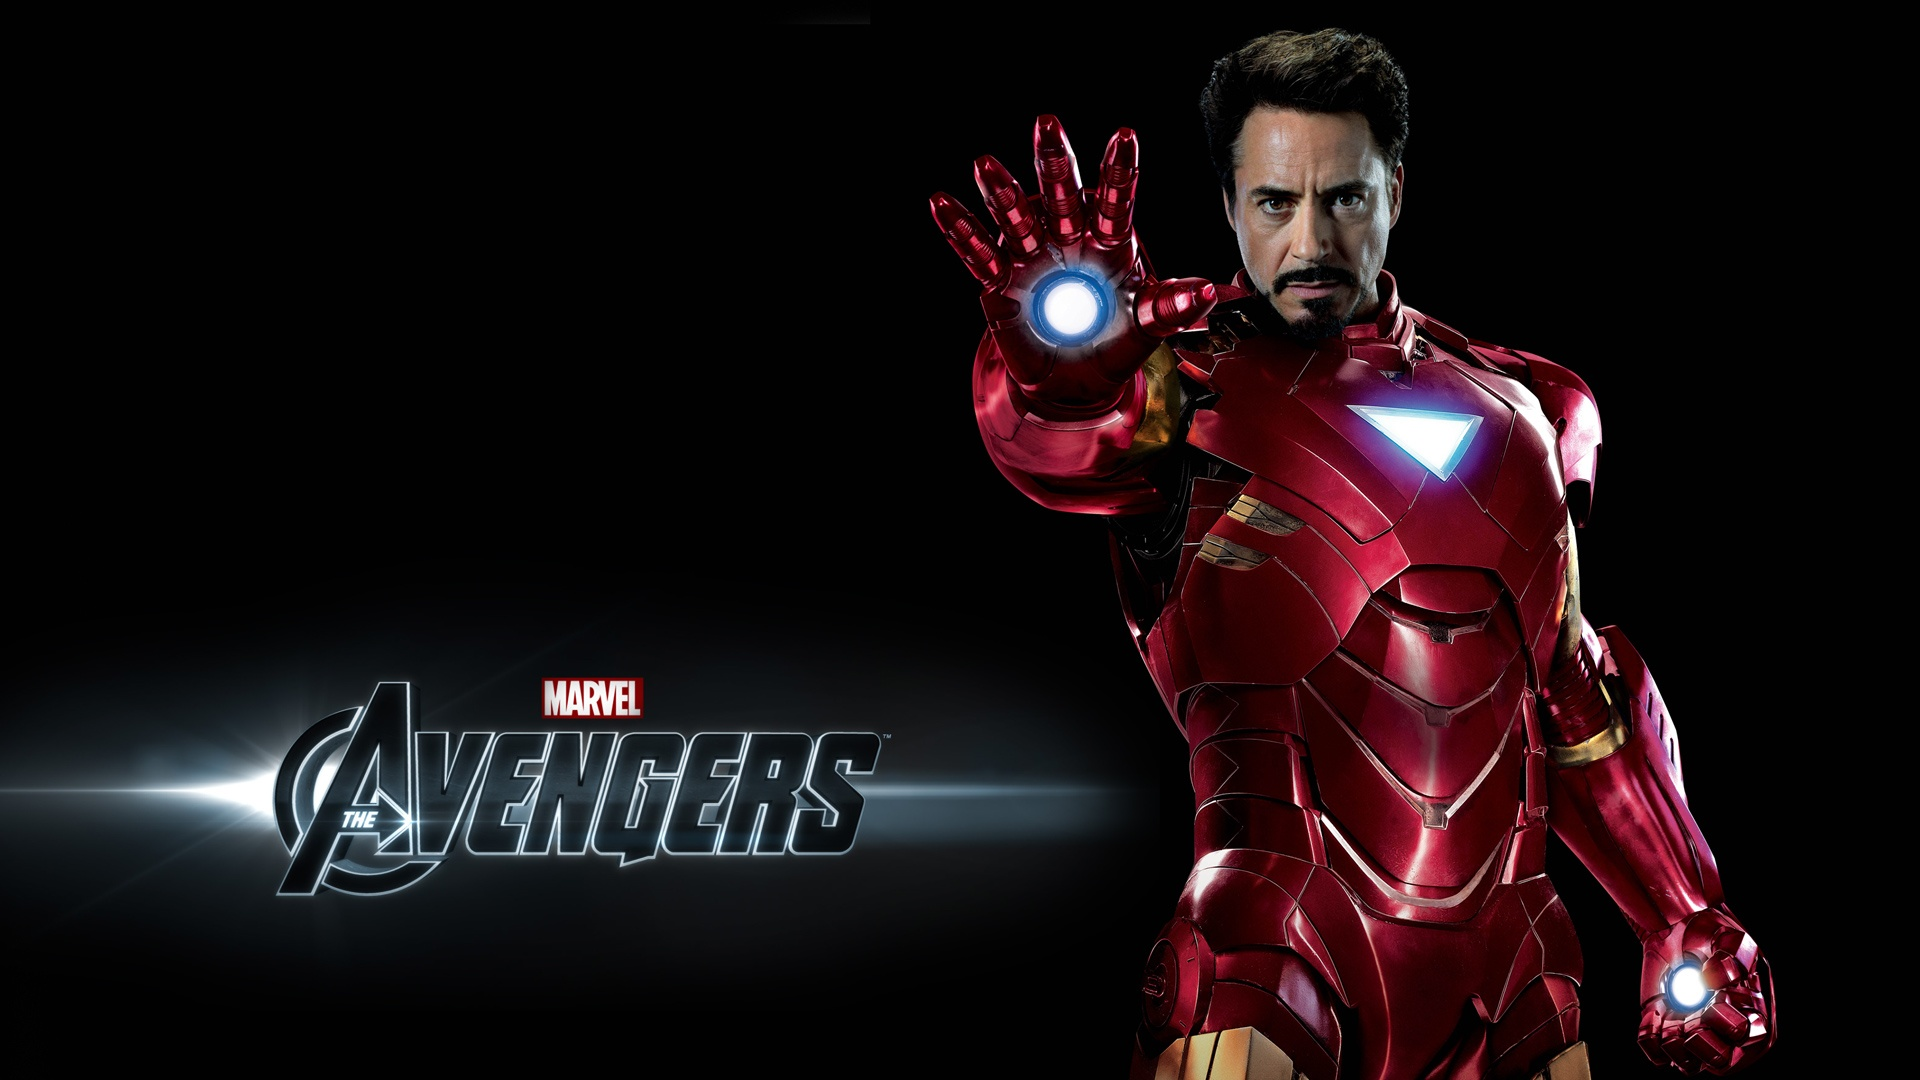 Iron Man In The Avengers Wallpapers